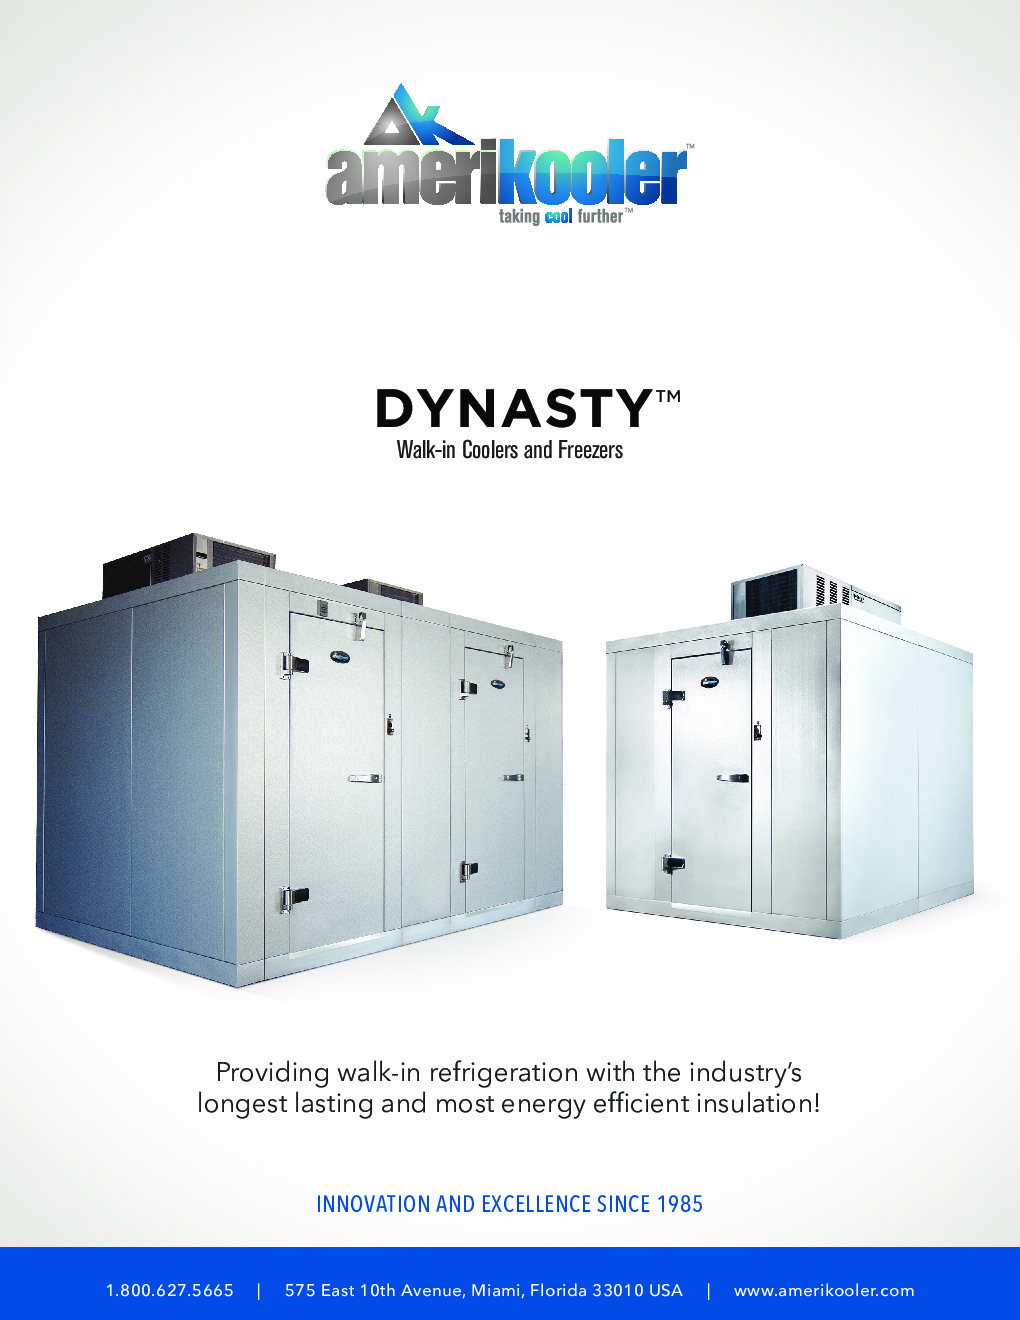 AmeriKooler DW071277N-6/6-RM 7' X 12' Walk-In Cooler, 6' L Cooler without Floor and 6' L Freezer, Remote